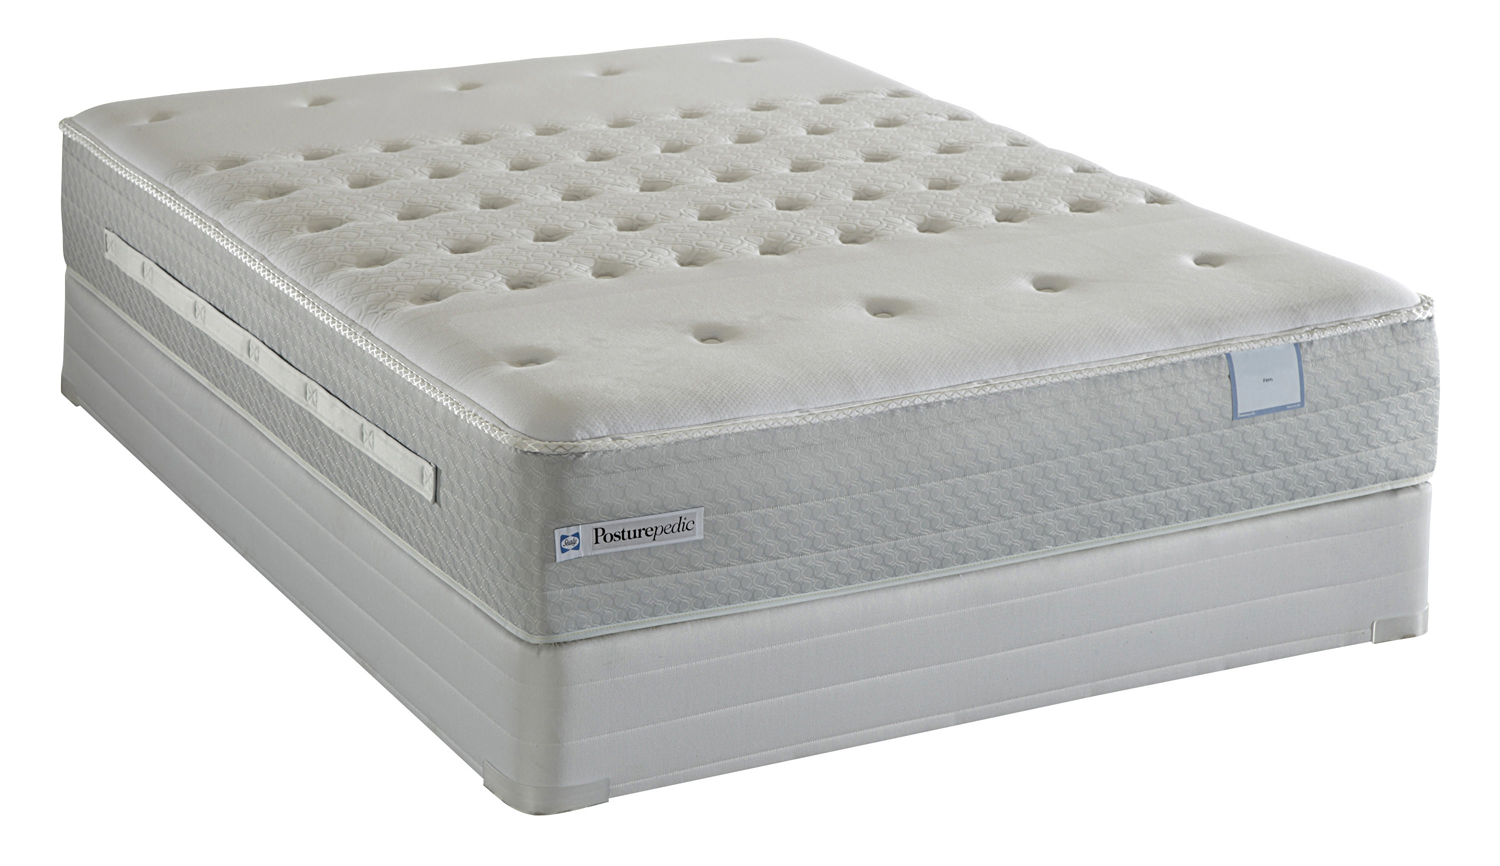 ... sealy posturepedic cushion firm sealy posturepedic cushion firm